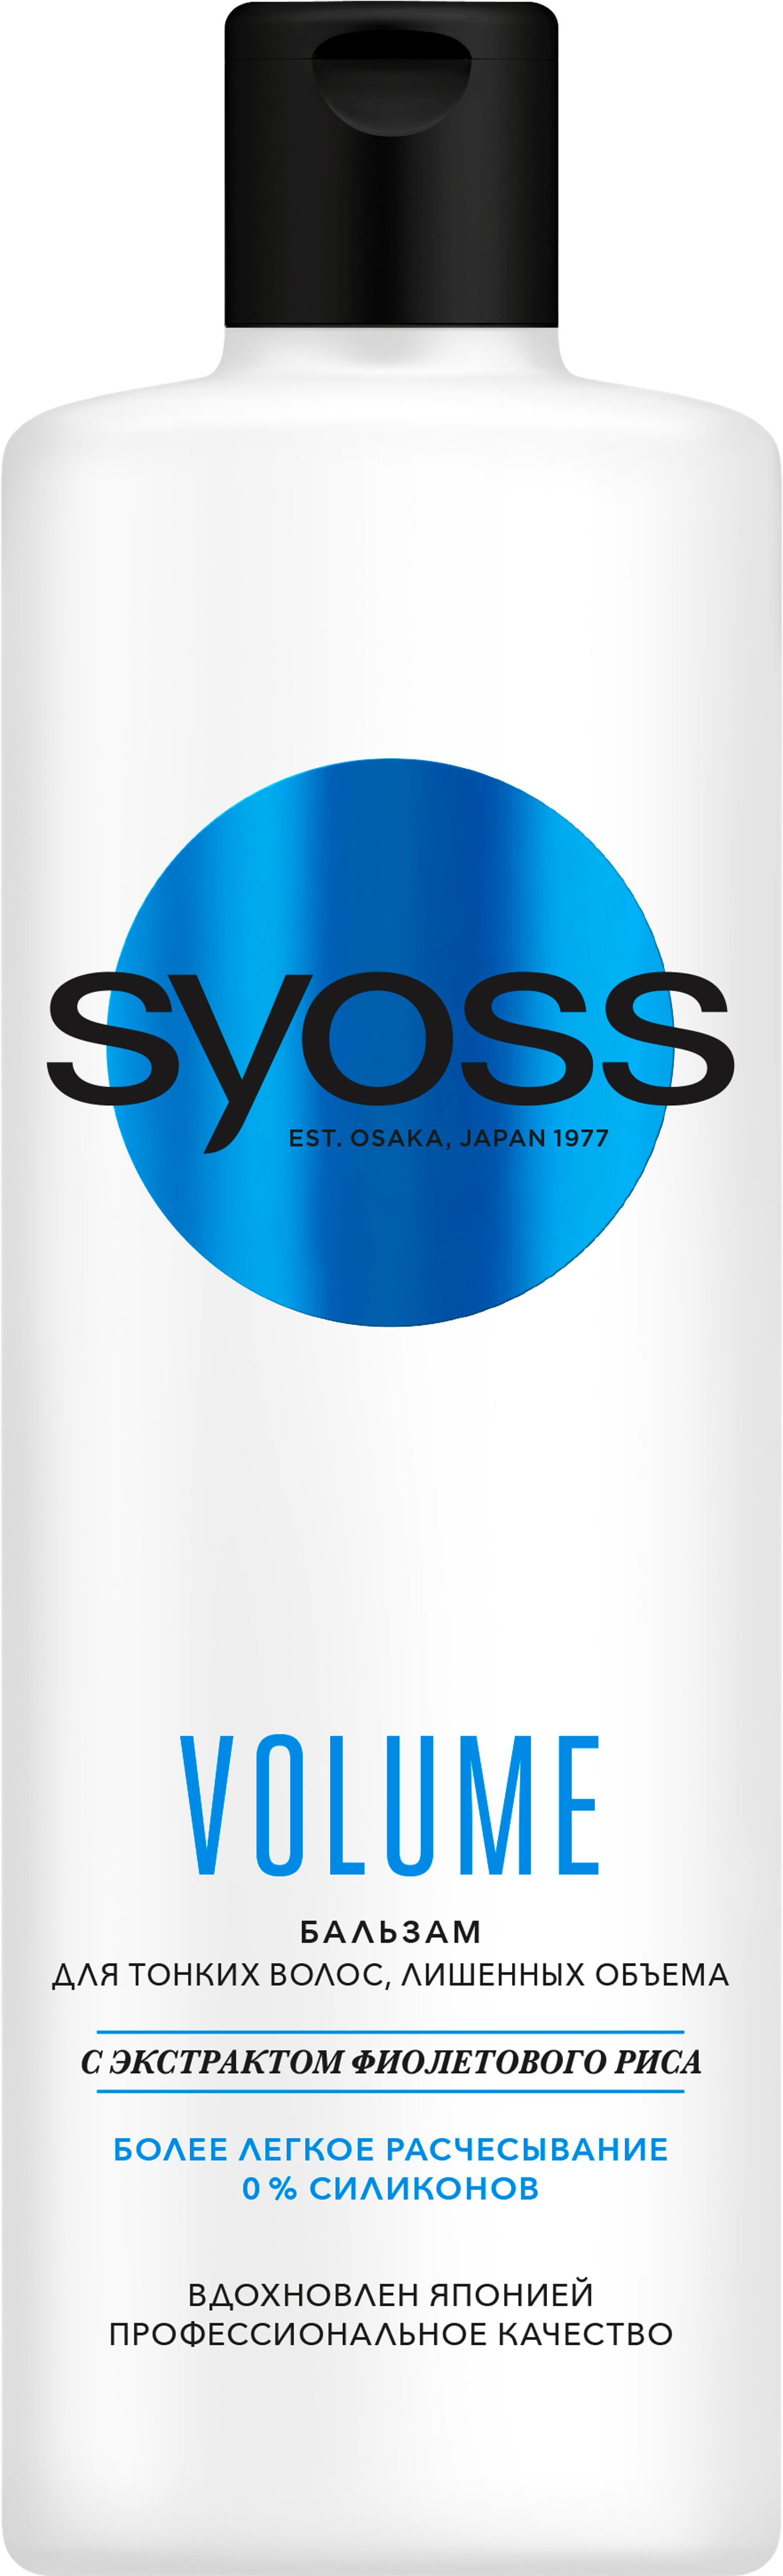 SYOSS VOLUME БАЛЬЗАМ